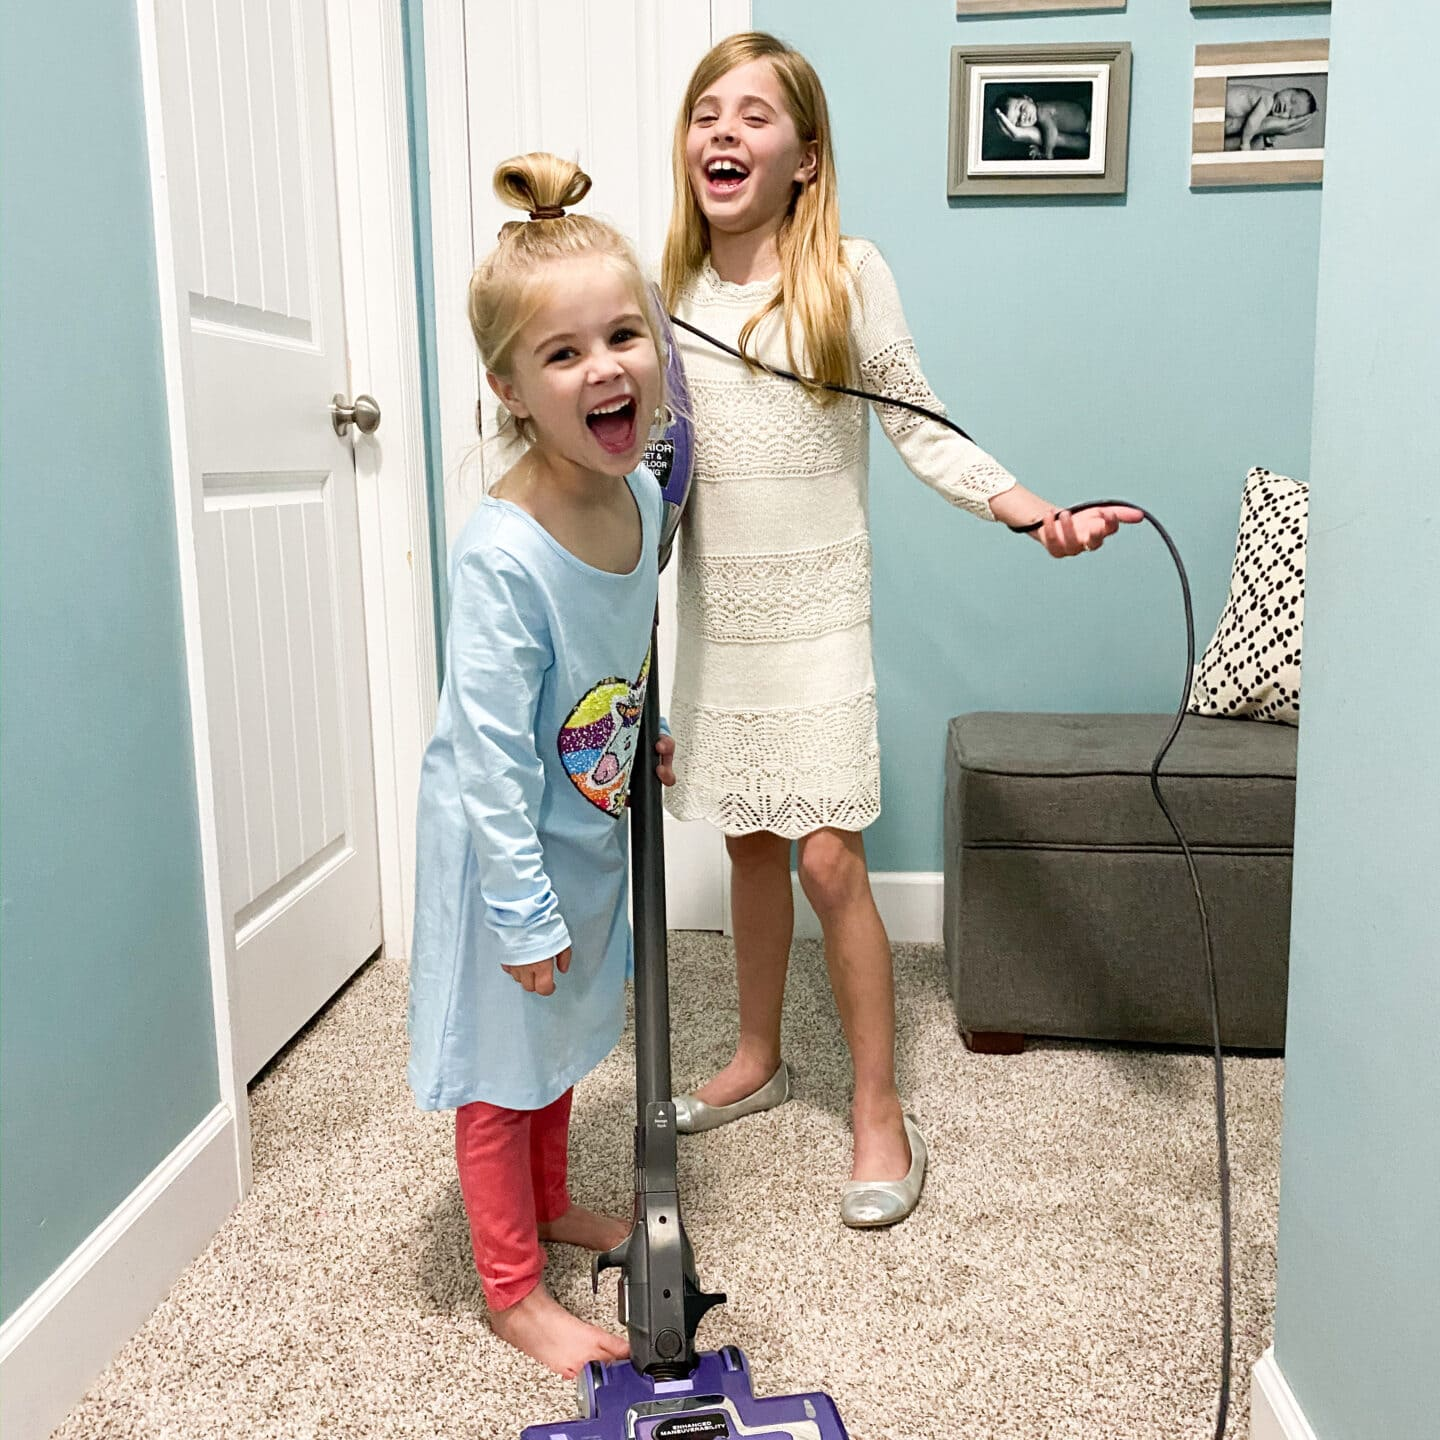 Should Kids Get Paid to Do Chores? How We Do Chores For Kids